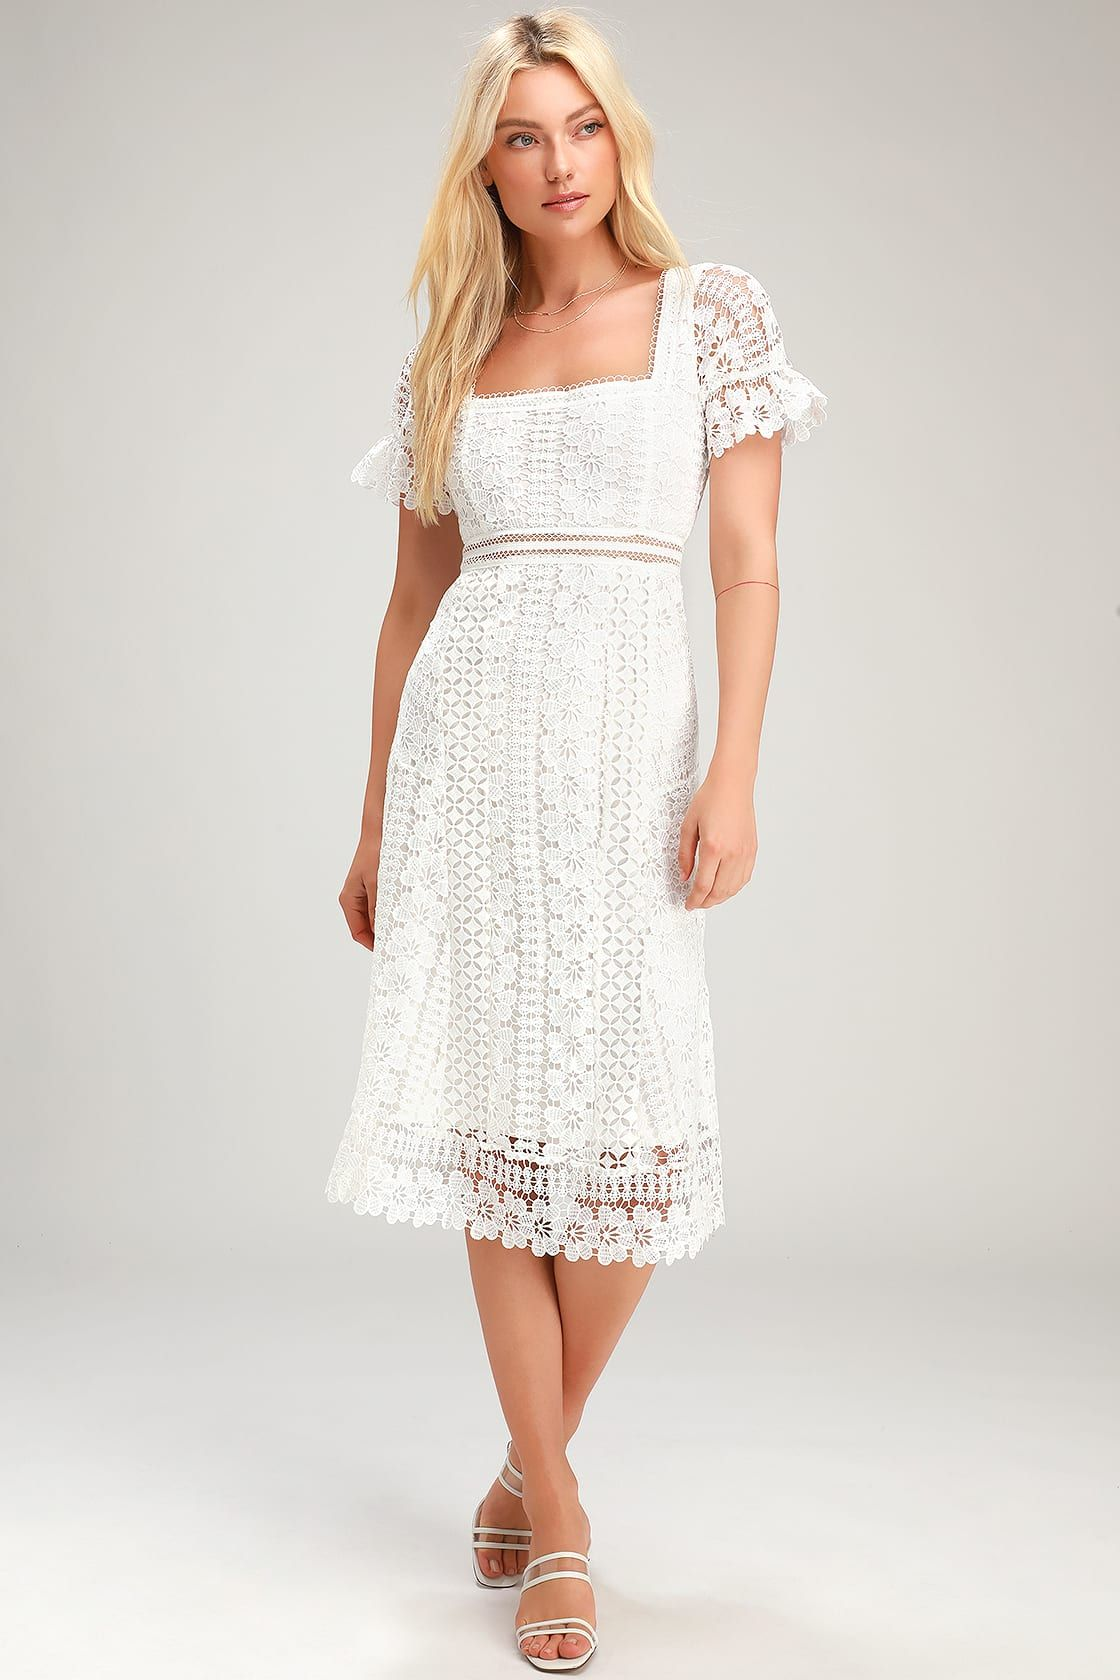 Love To Be Loved White Lace Midi Dress White Lace Midi Dress Cute Lace Dresses Lace White Dress [ 1680 x 1120 Pixel ]